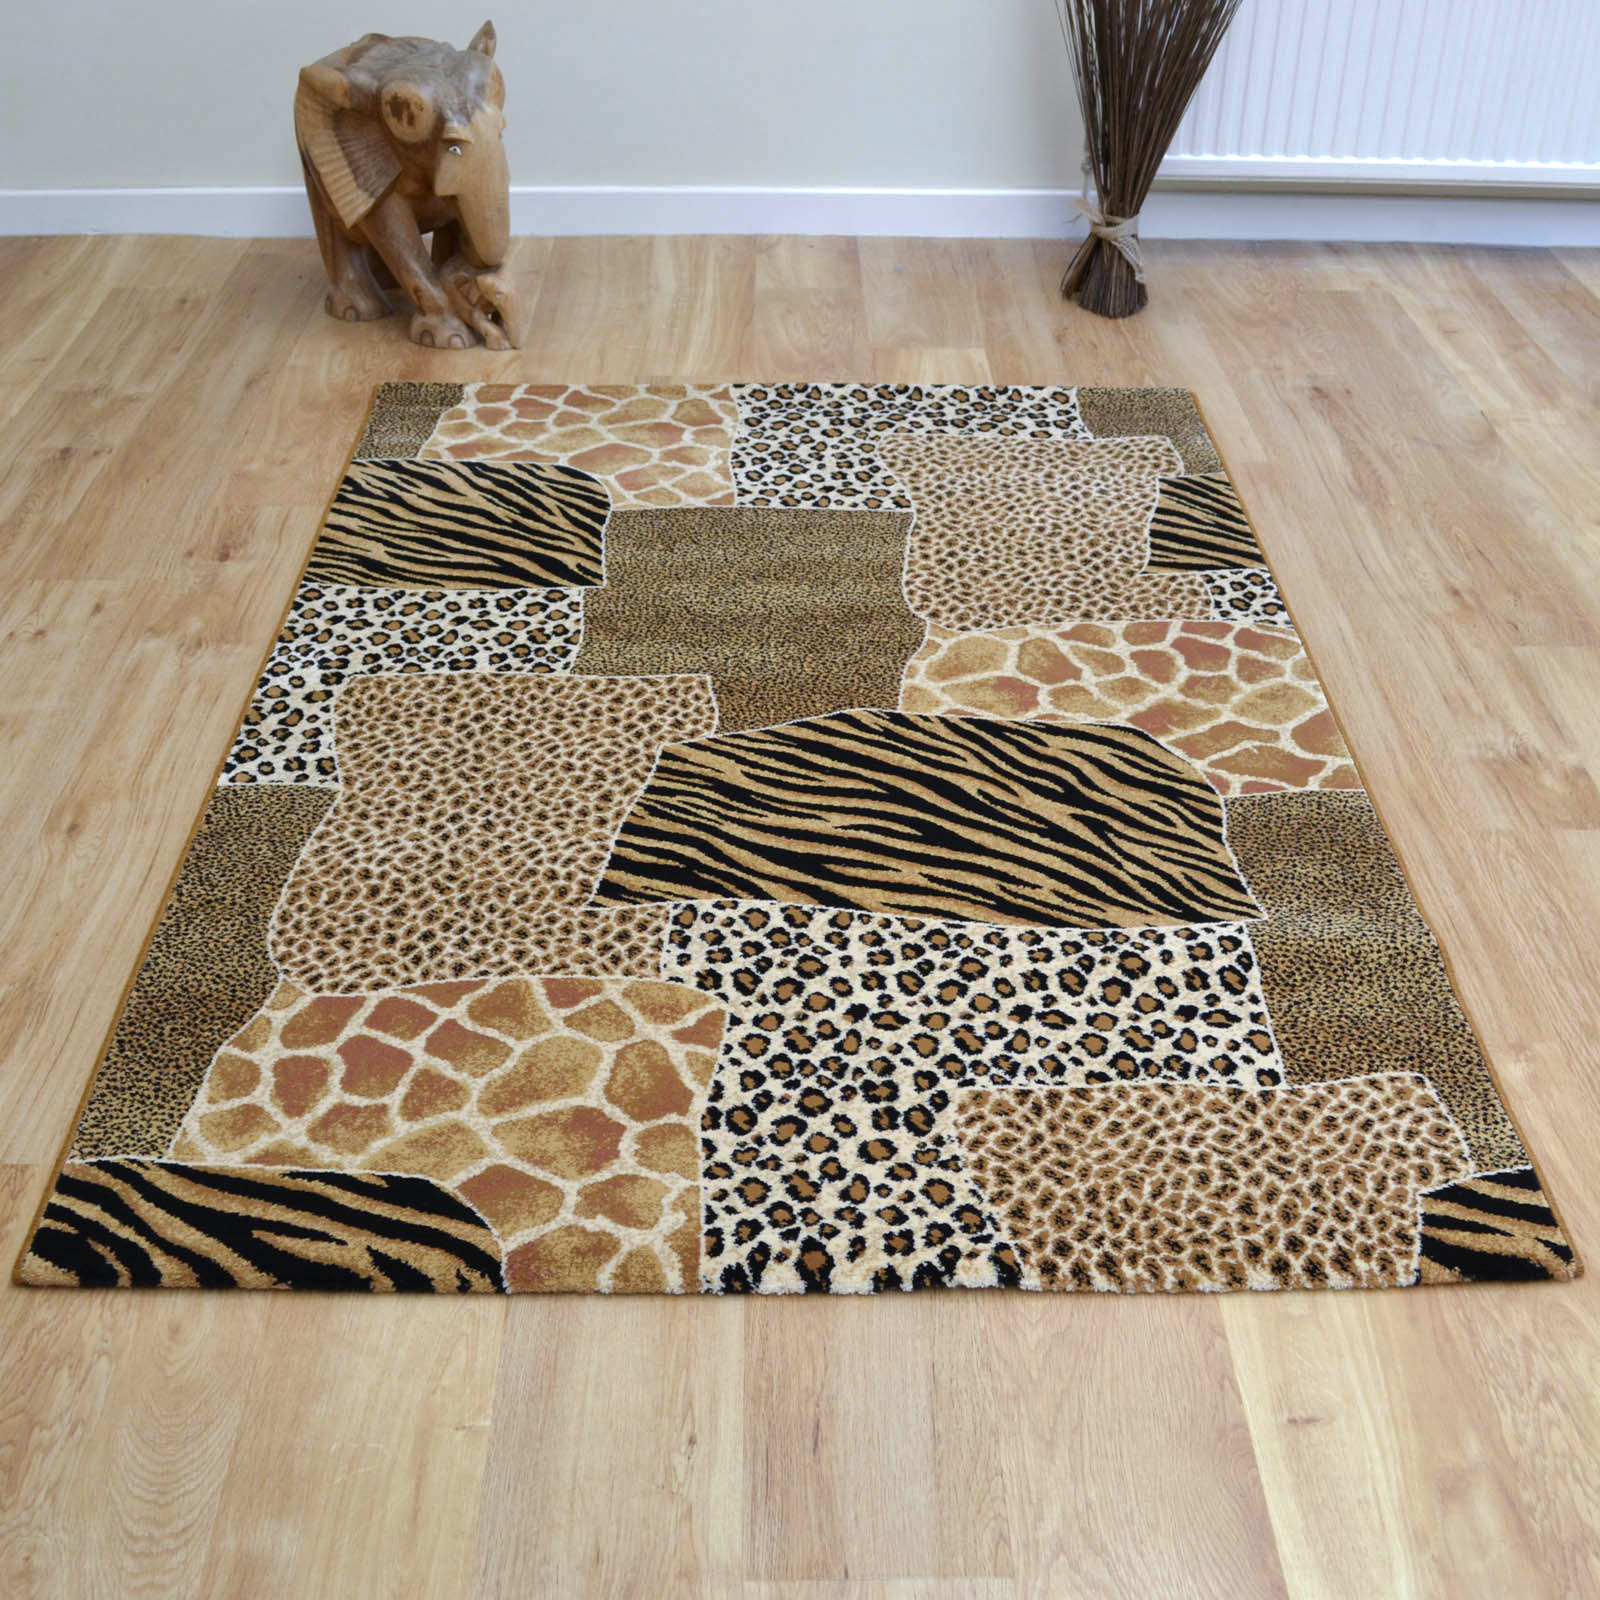 Galleria Rugs 51027 2223 Animal Print Patchwork